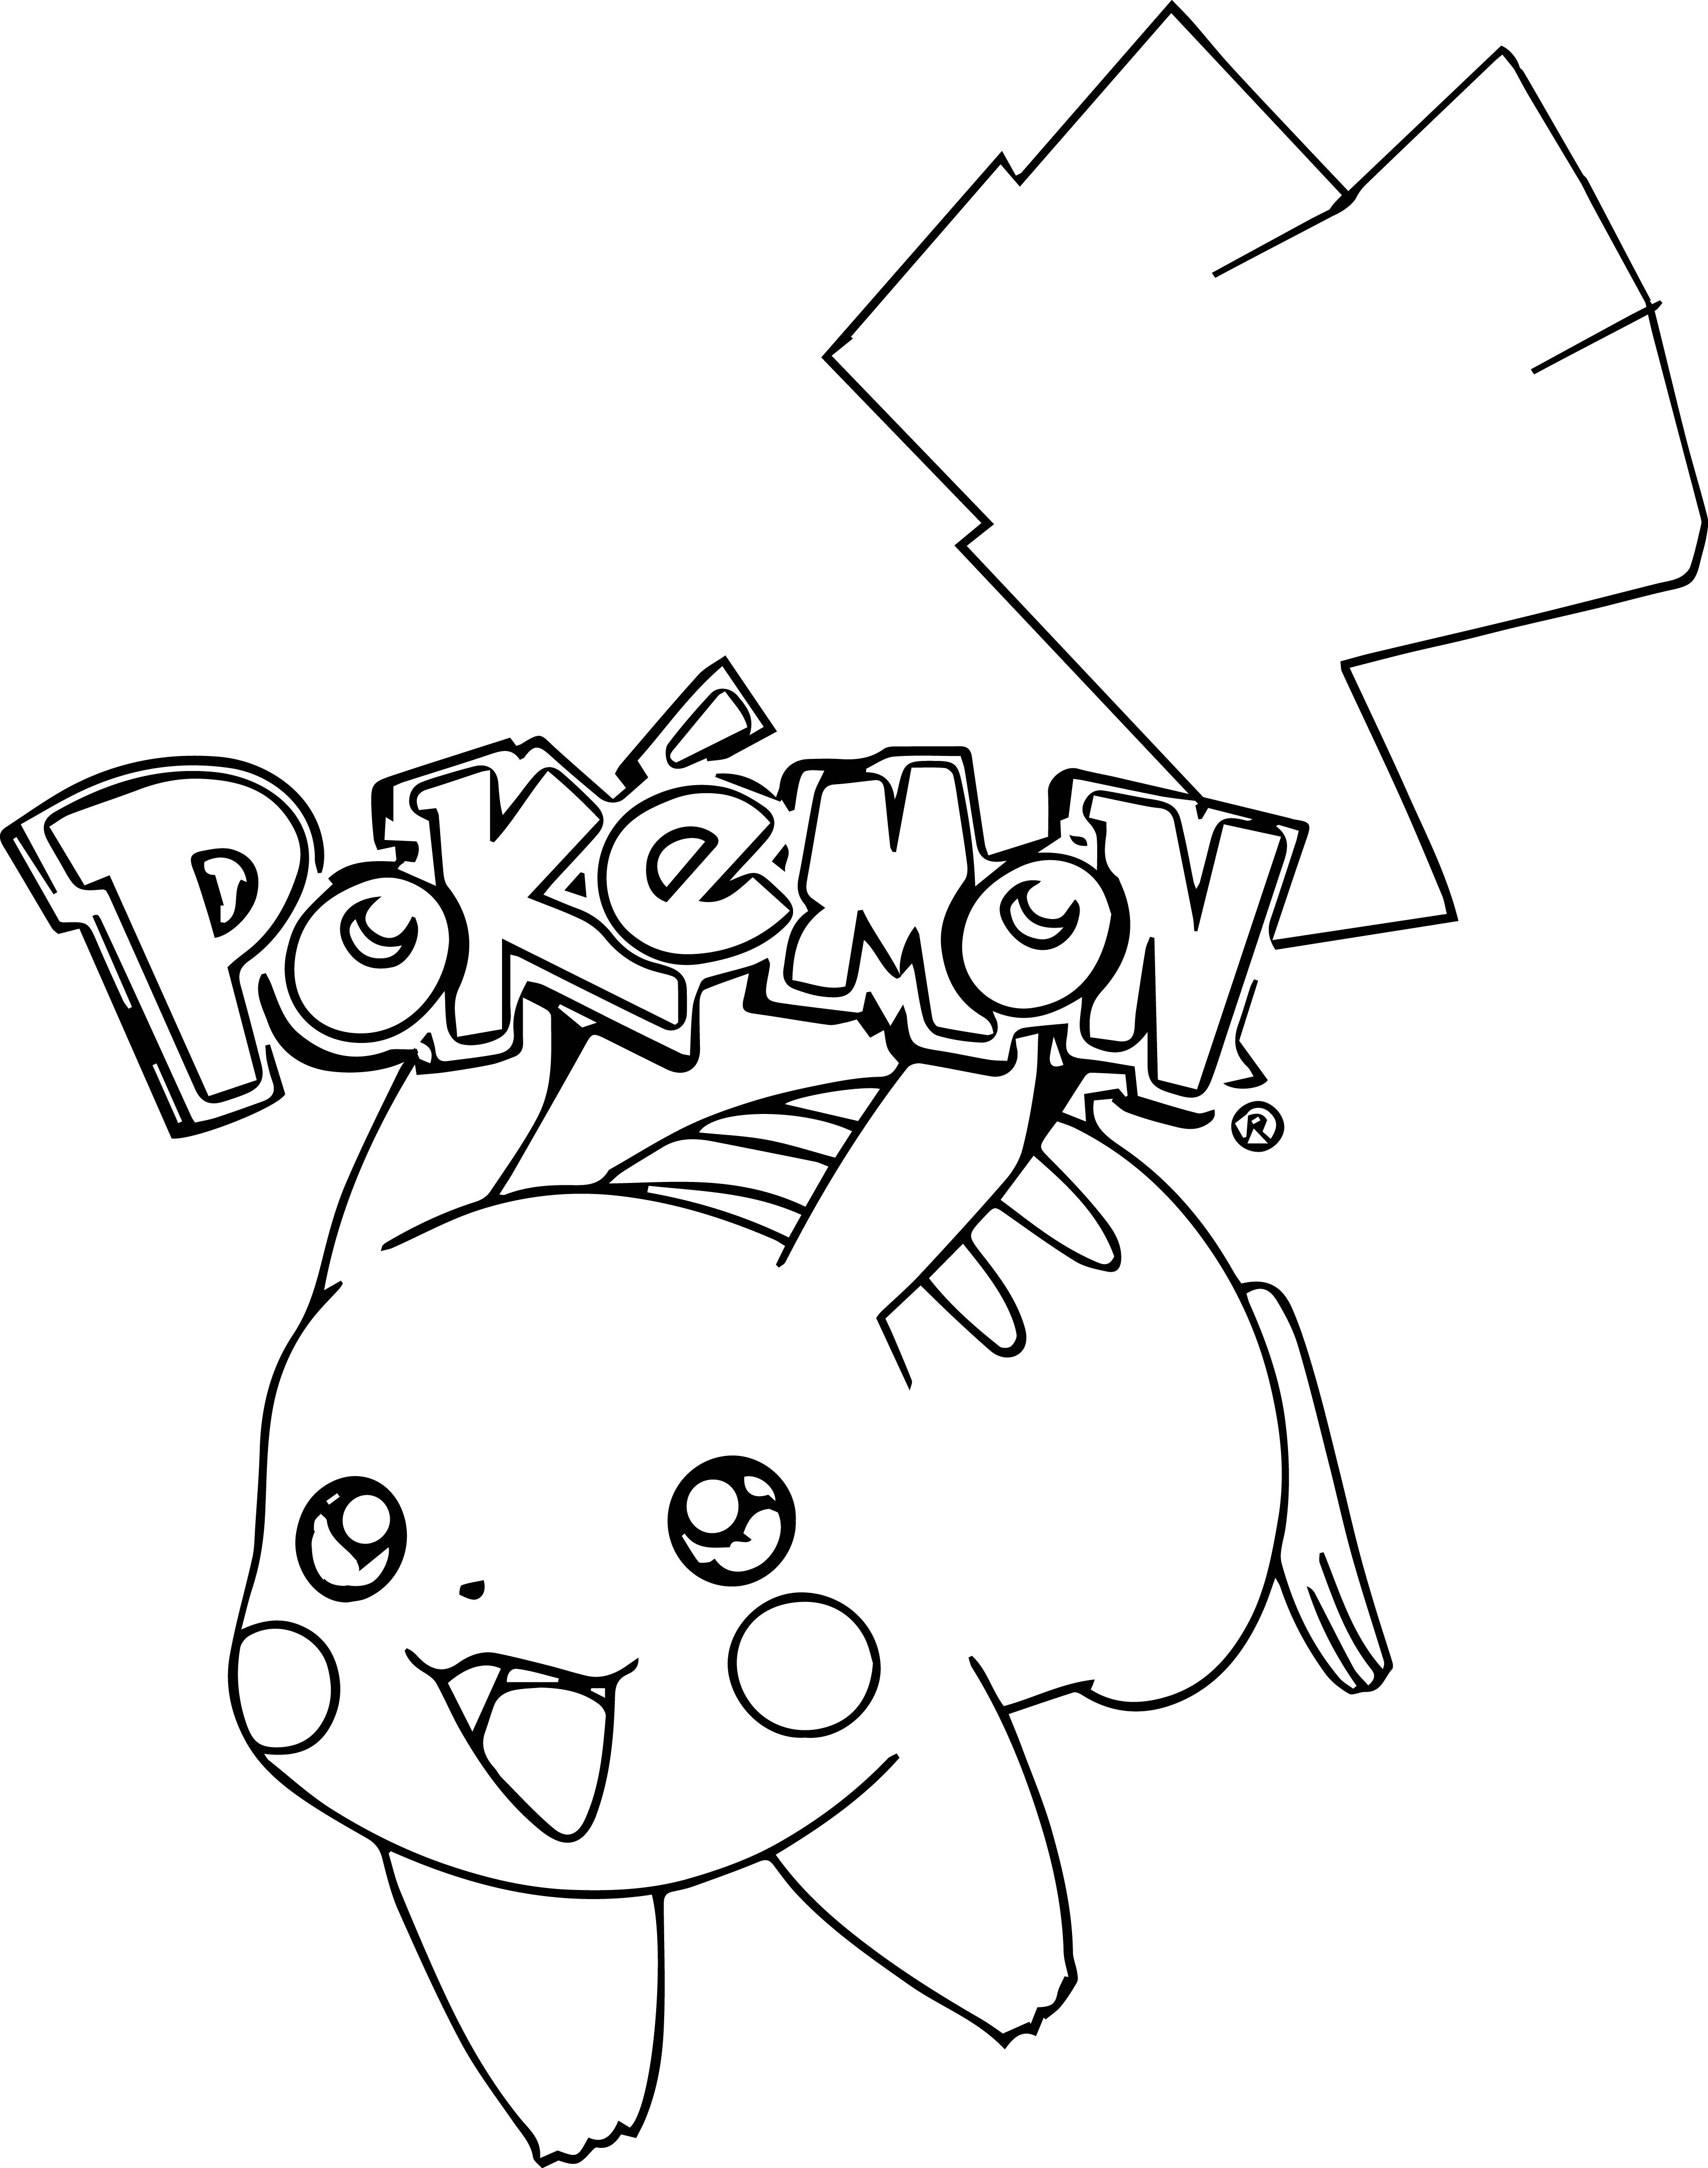 3392x4305 Pikachu And Jigglypuf Singing Pokemon Coloring Page Preschool